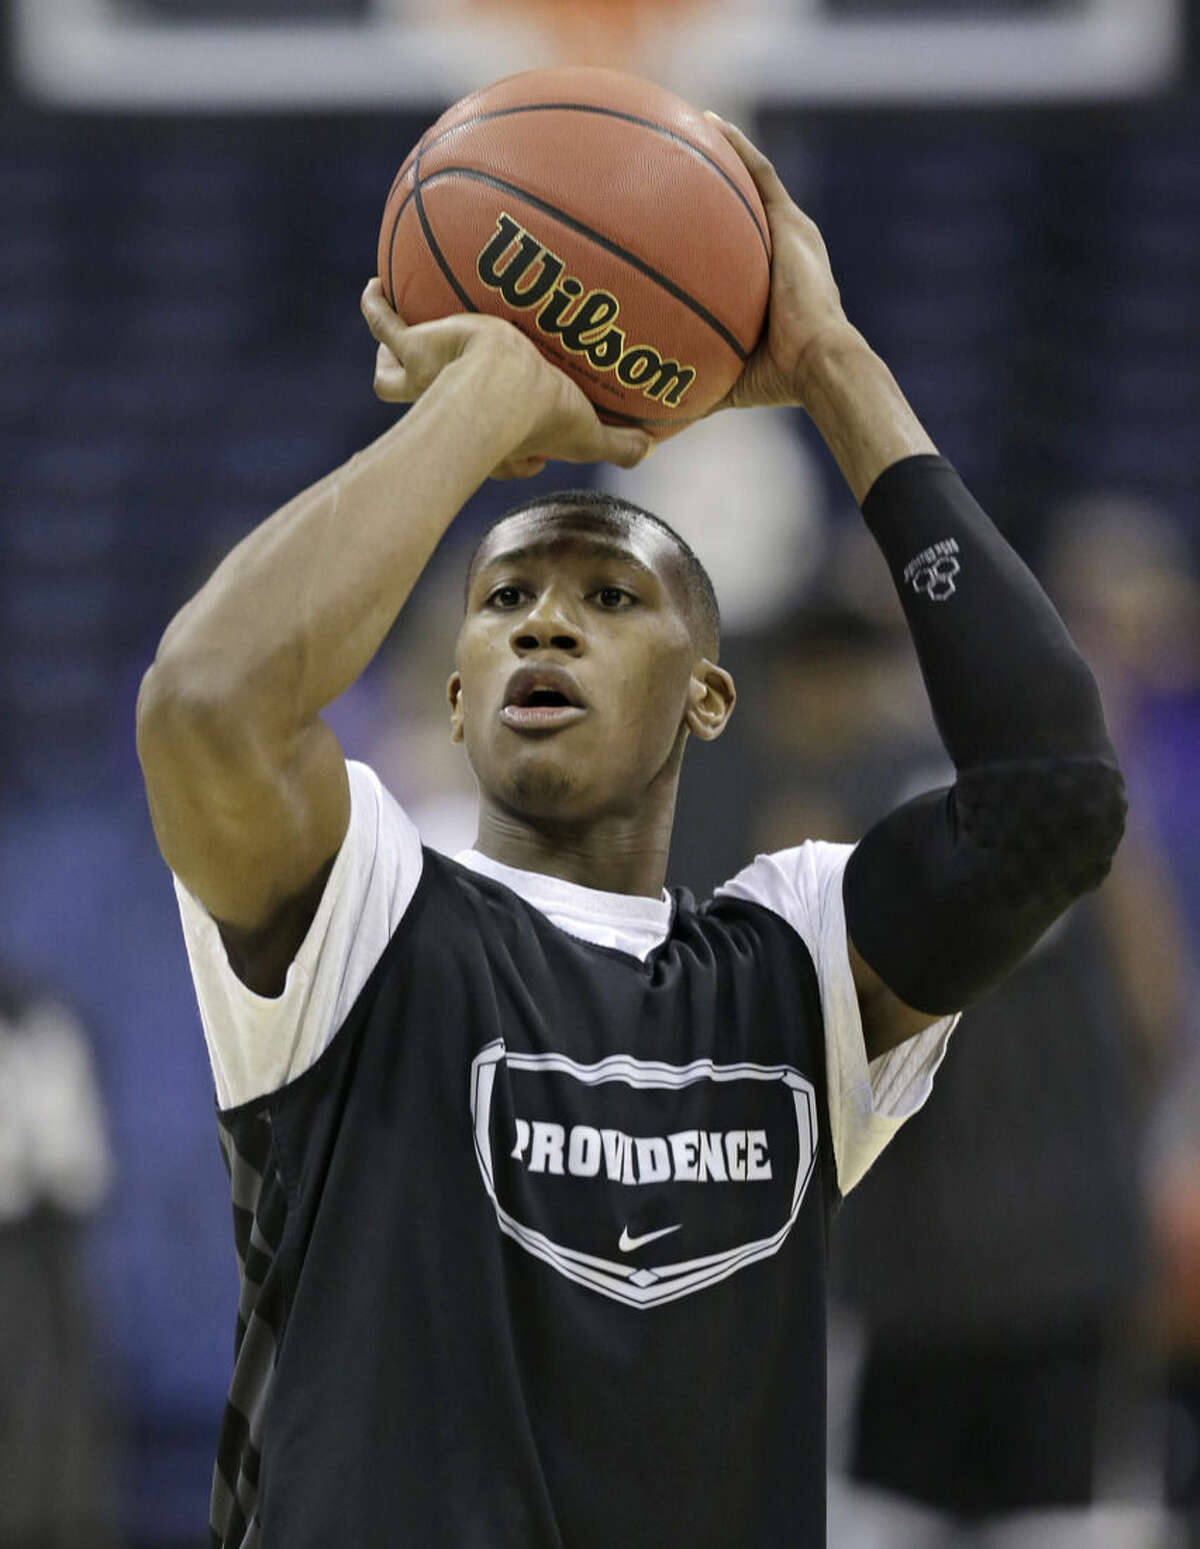 Providence's Kris Dunn shoots during practice at the NCAA college basketball tournament in Columbus, Ohio, Thursday, March 19, 2015. Providence plays Dayton in the second round on Friday. (AP Photo/Tony Dejak)